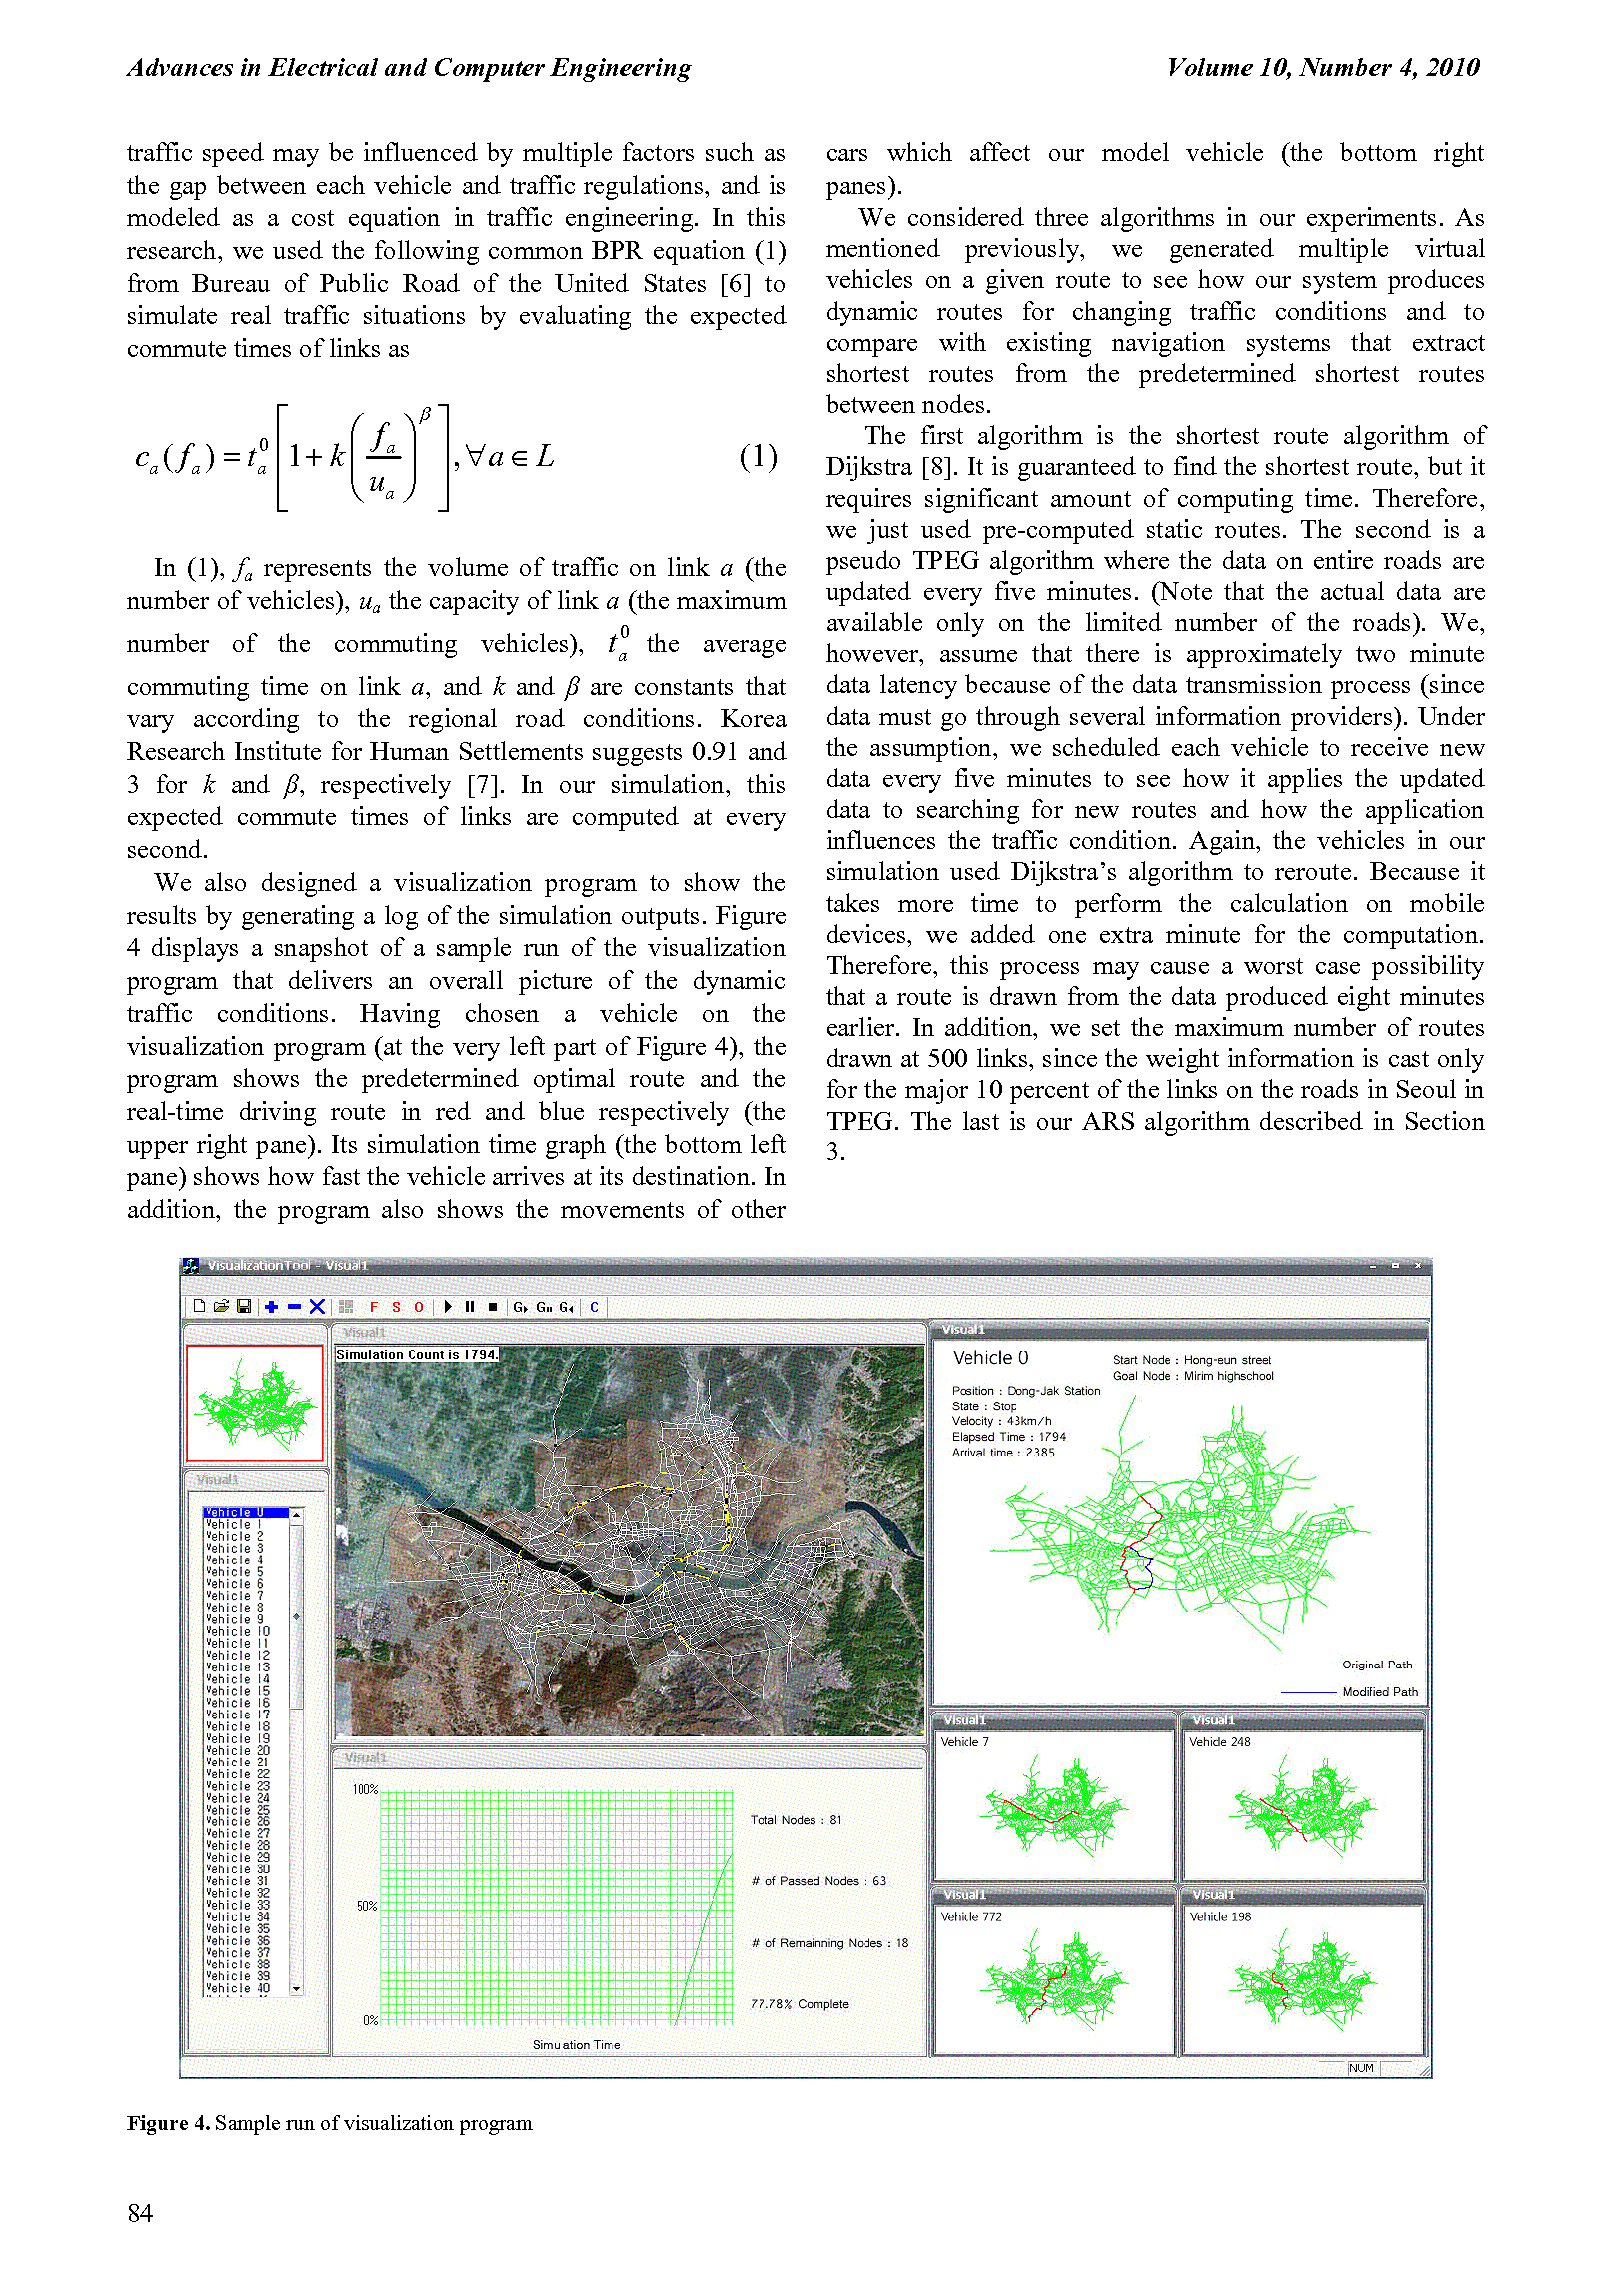 PDF Quickview for paper with DOI:10.4316/AECE.2010.04013